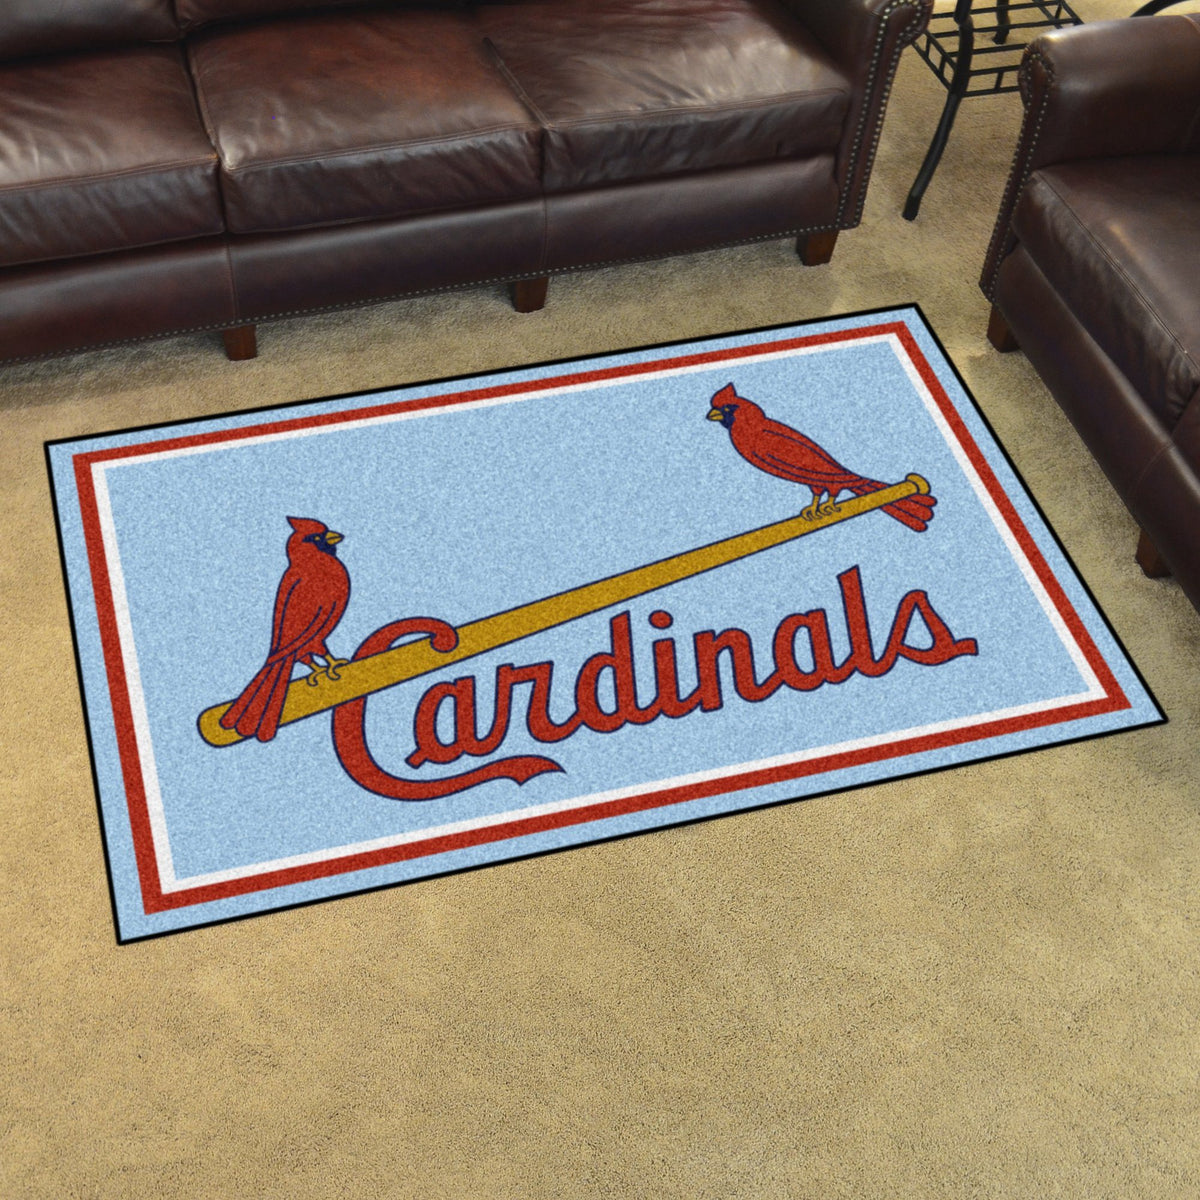 MLB Retro - 4' x 6' Rug MLB Retro Mats, Plush Rugs, 4x6 Rug, MLB, Home Fan Mats St. Louis Cardinals 3